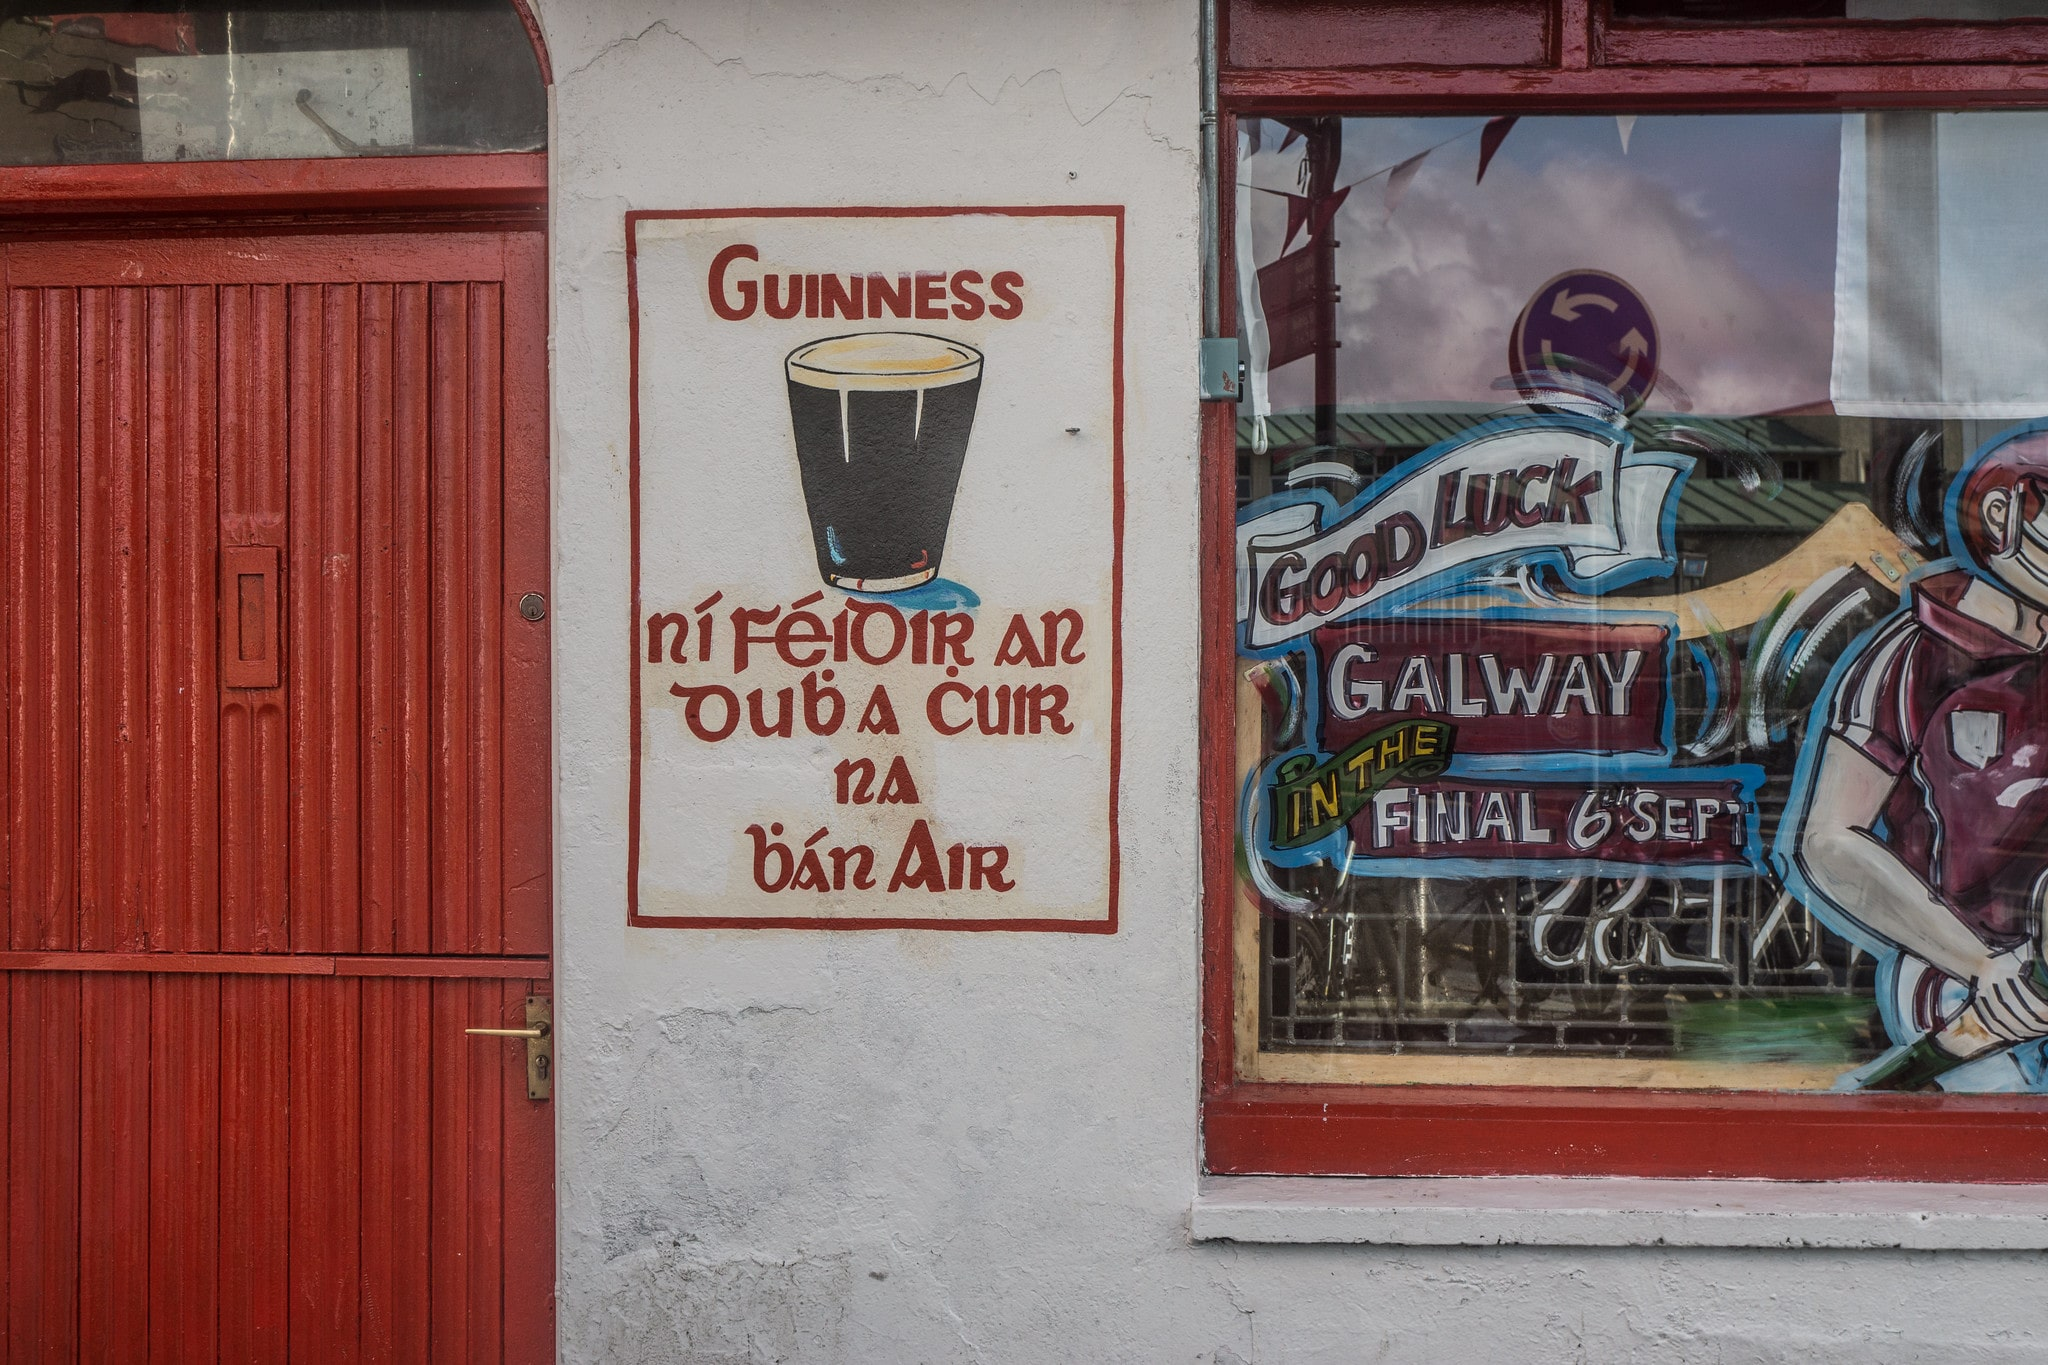 Having a pint is one of the best things to do in Galway Ireland